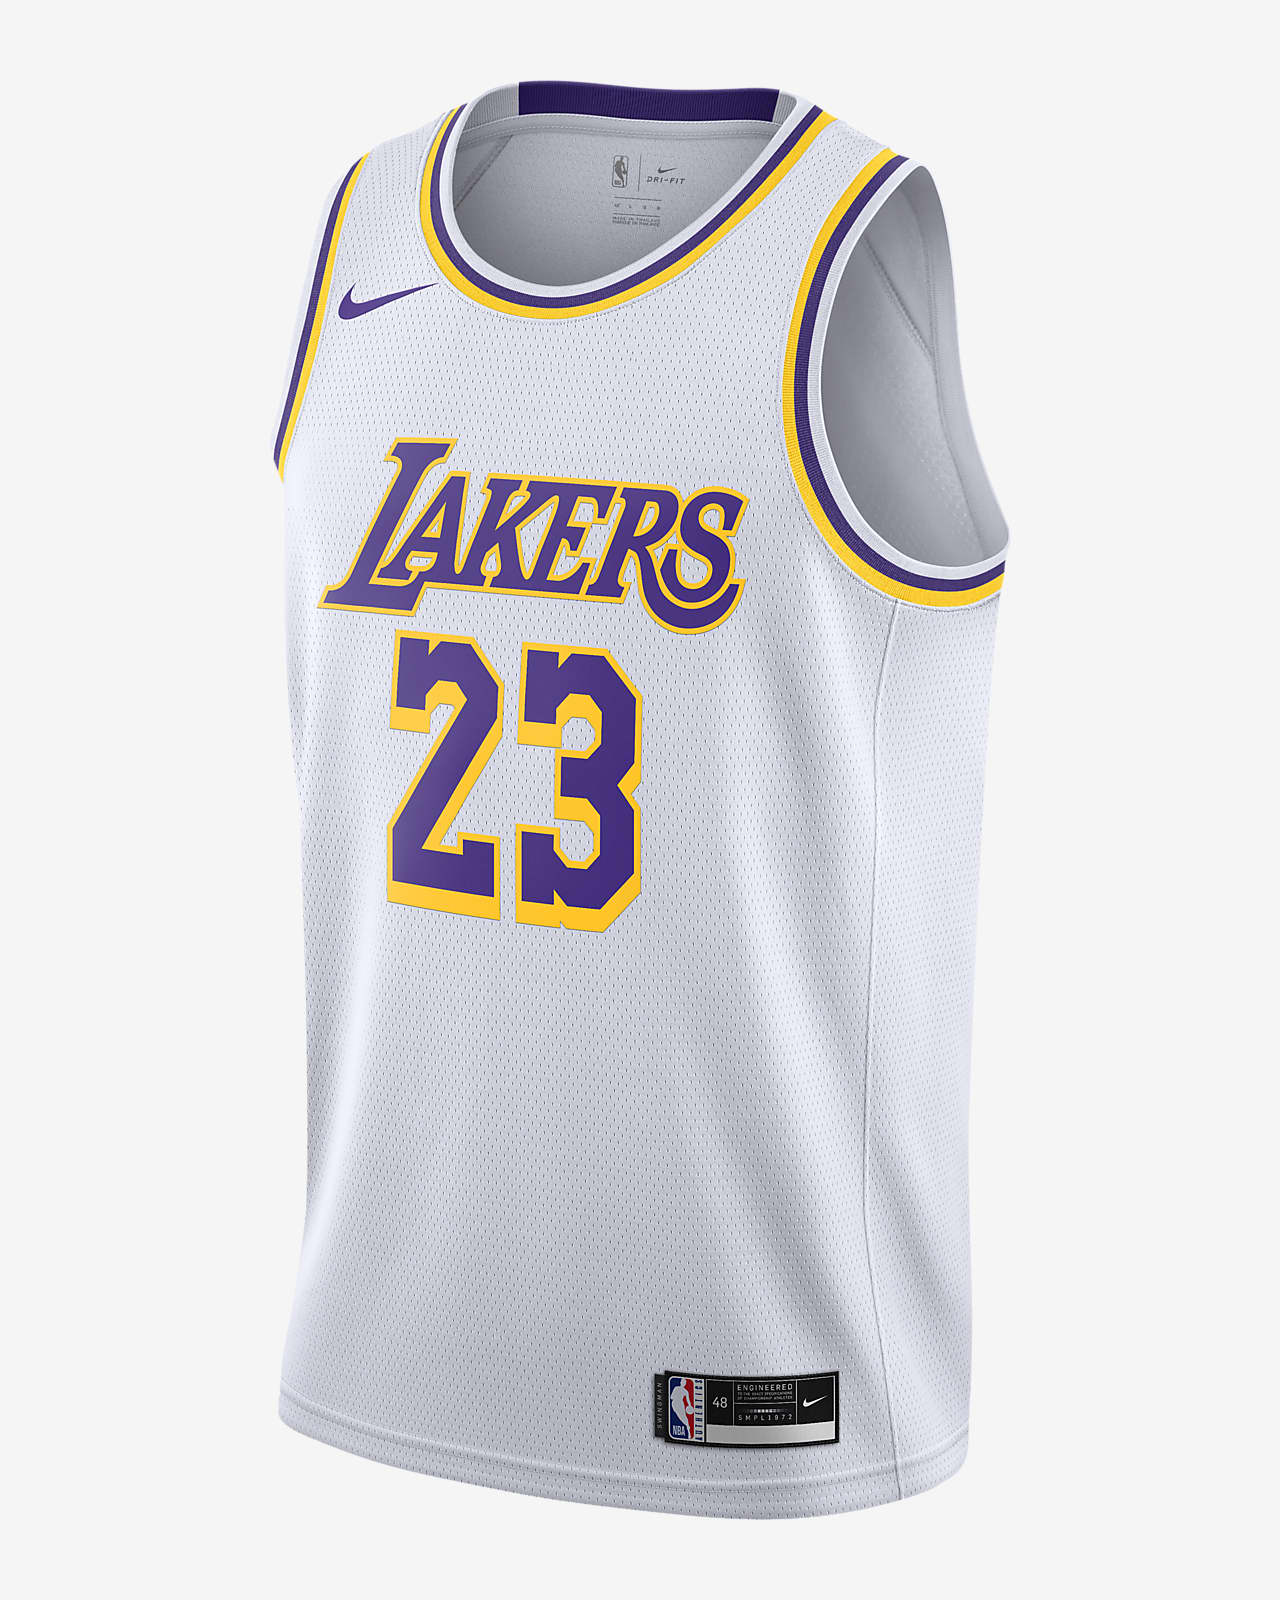 LeBron James Lake Association Edition 2020 Nike NBA Swingman Jersey